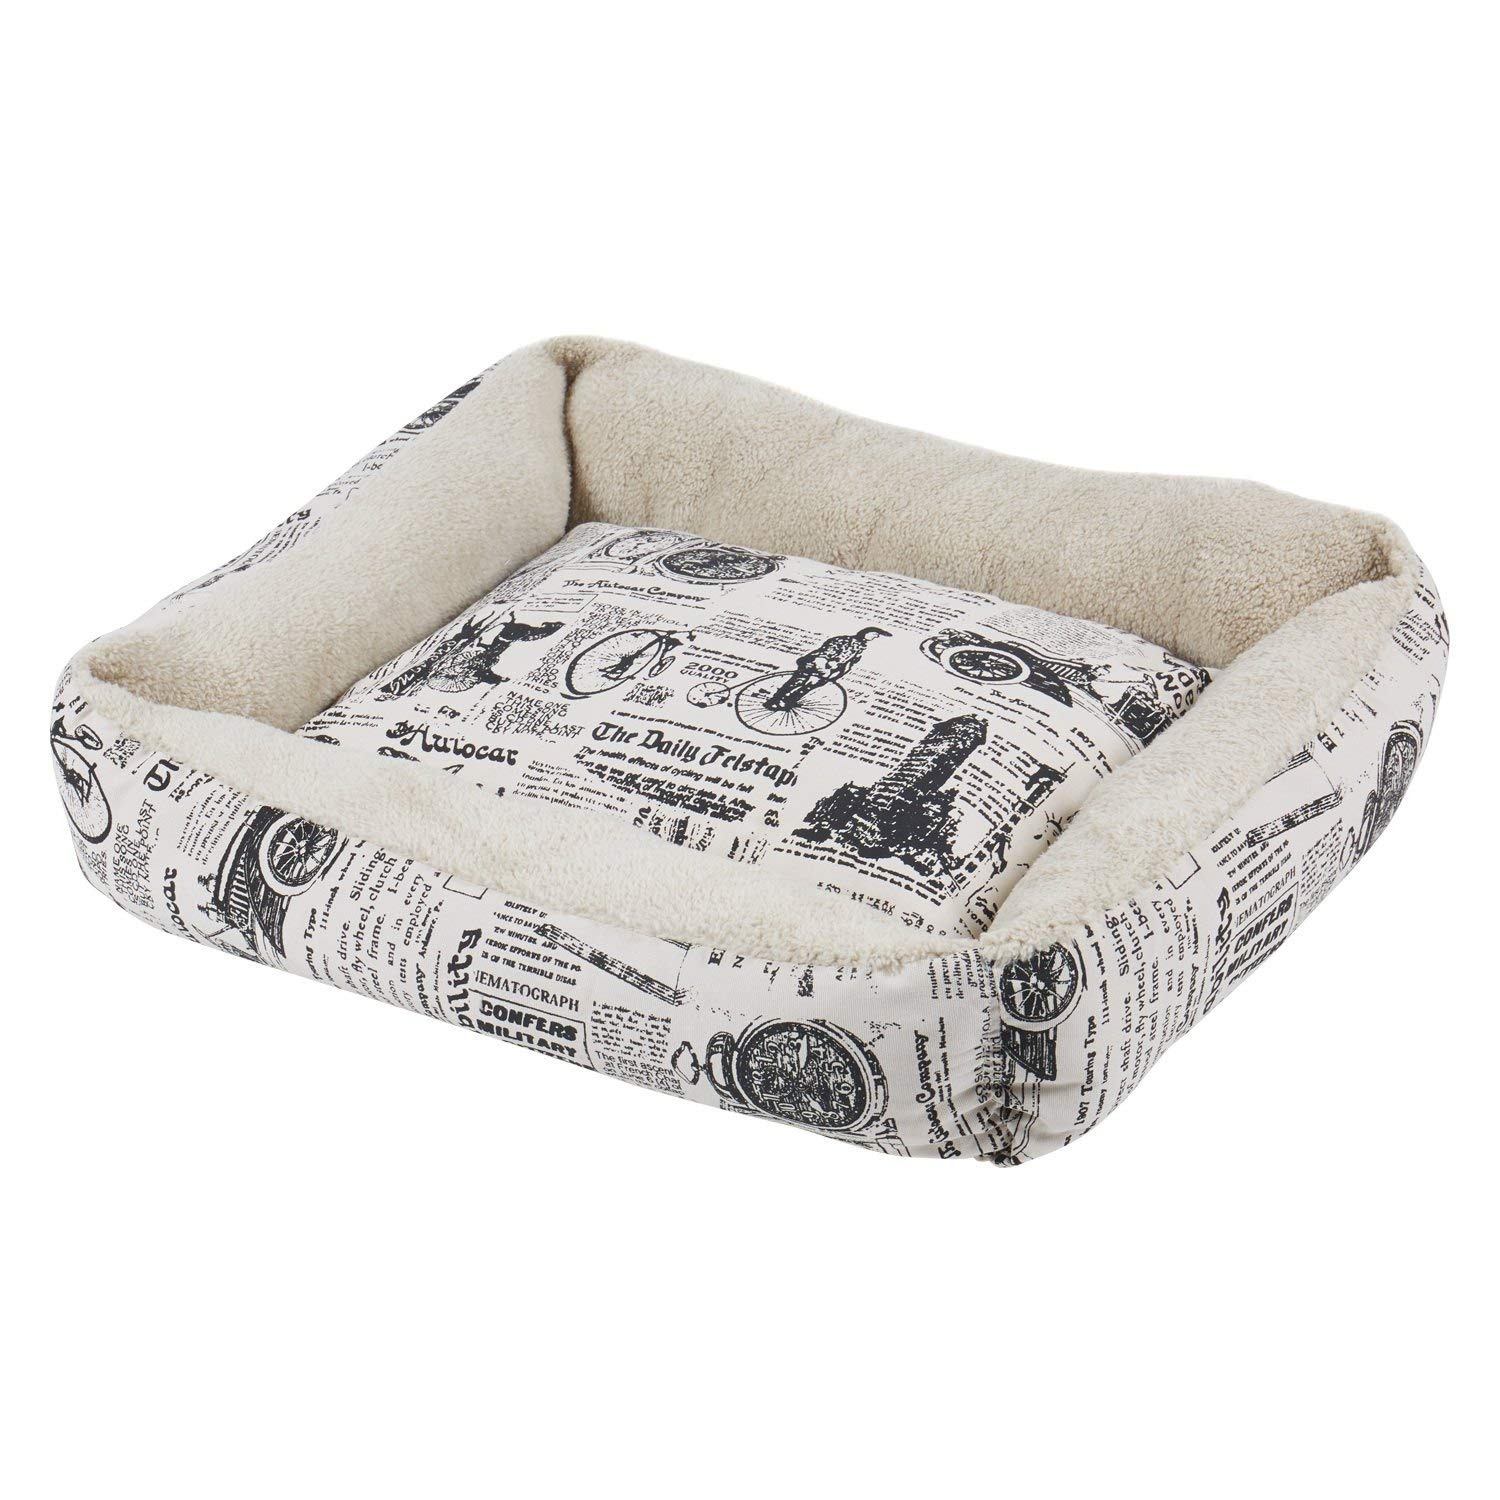 Large Paws & Pals Dog Bed Size  21  L x 17  W